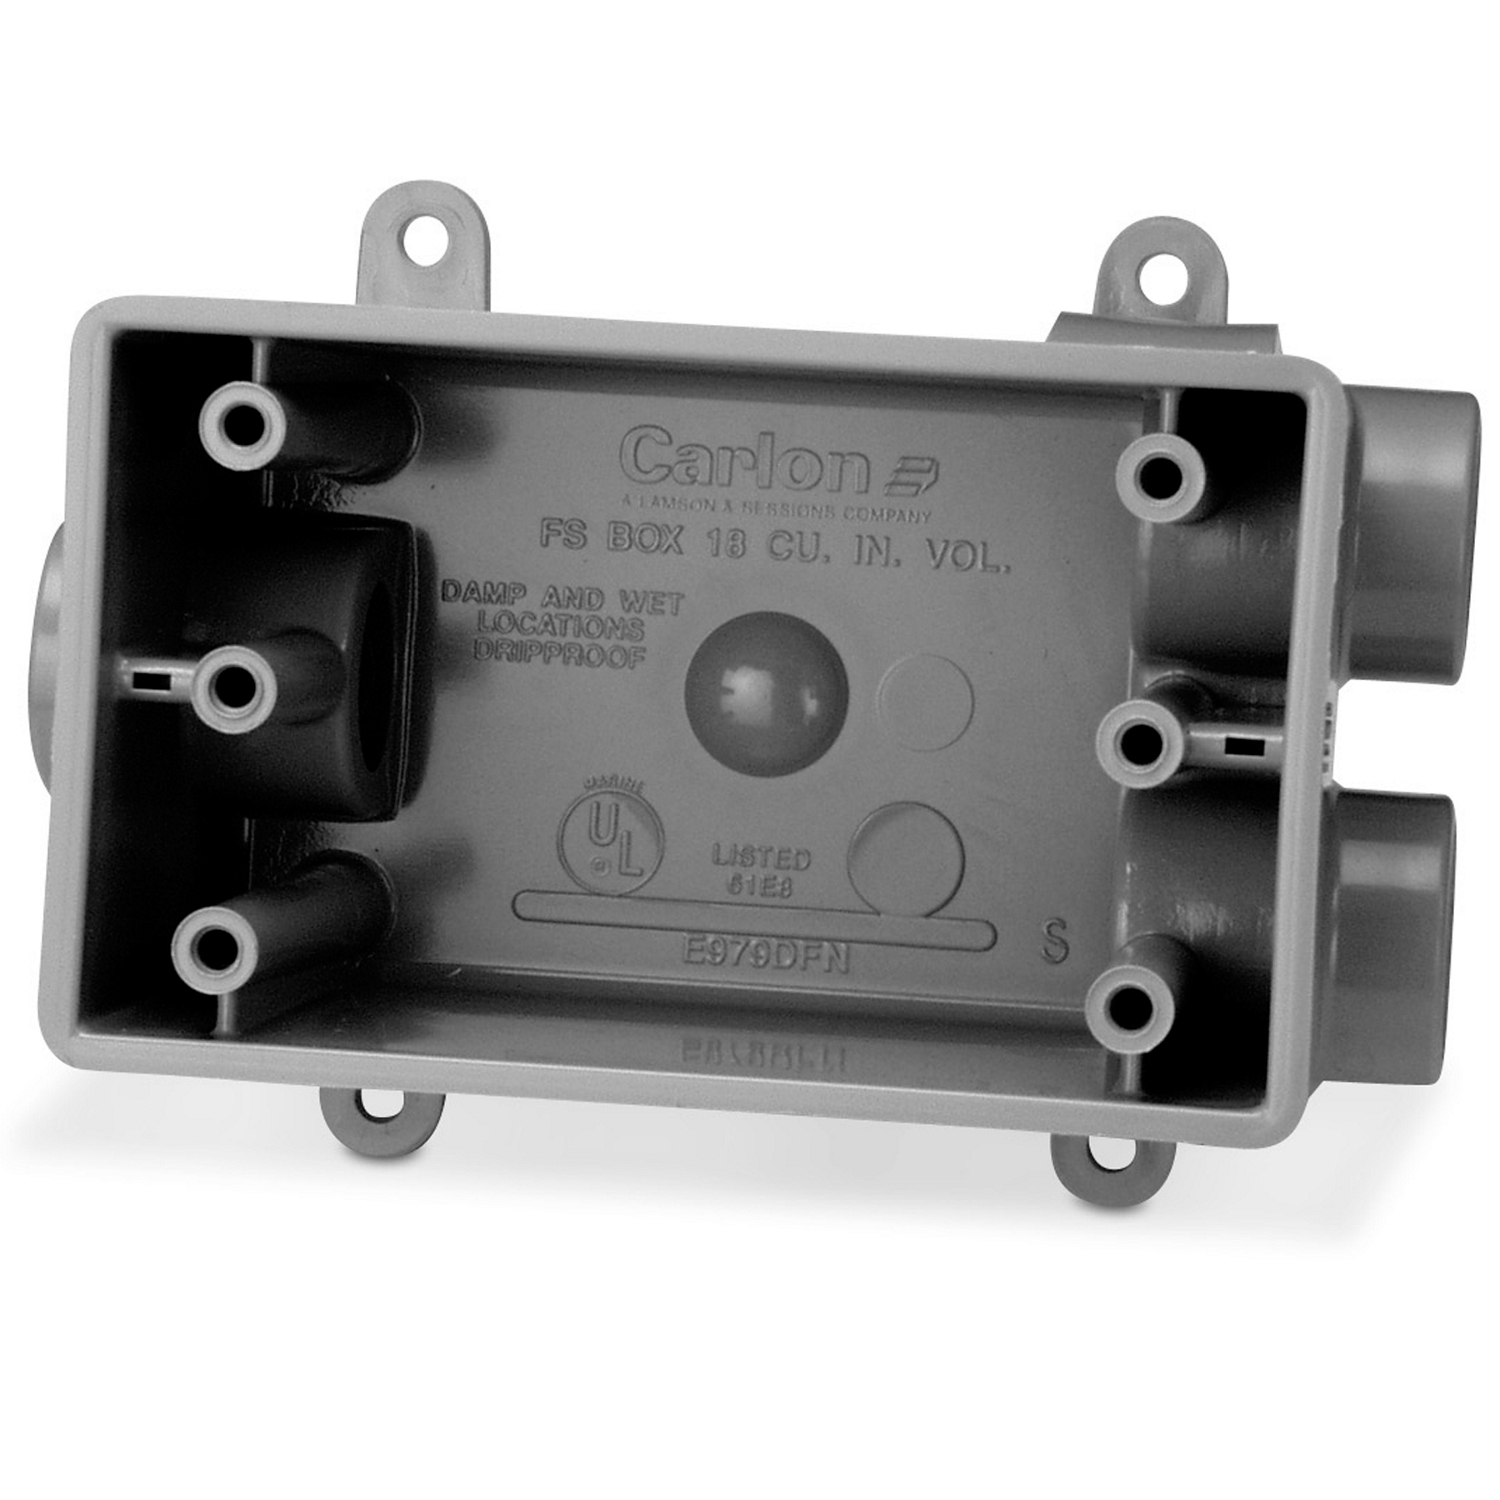 CARLON E979EFN-CAR 3/4 FSCC PVC BOX